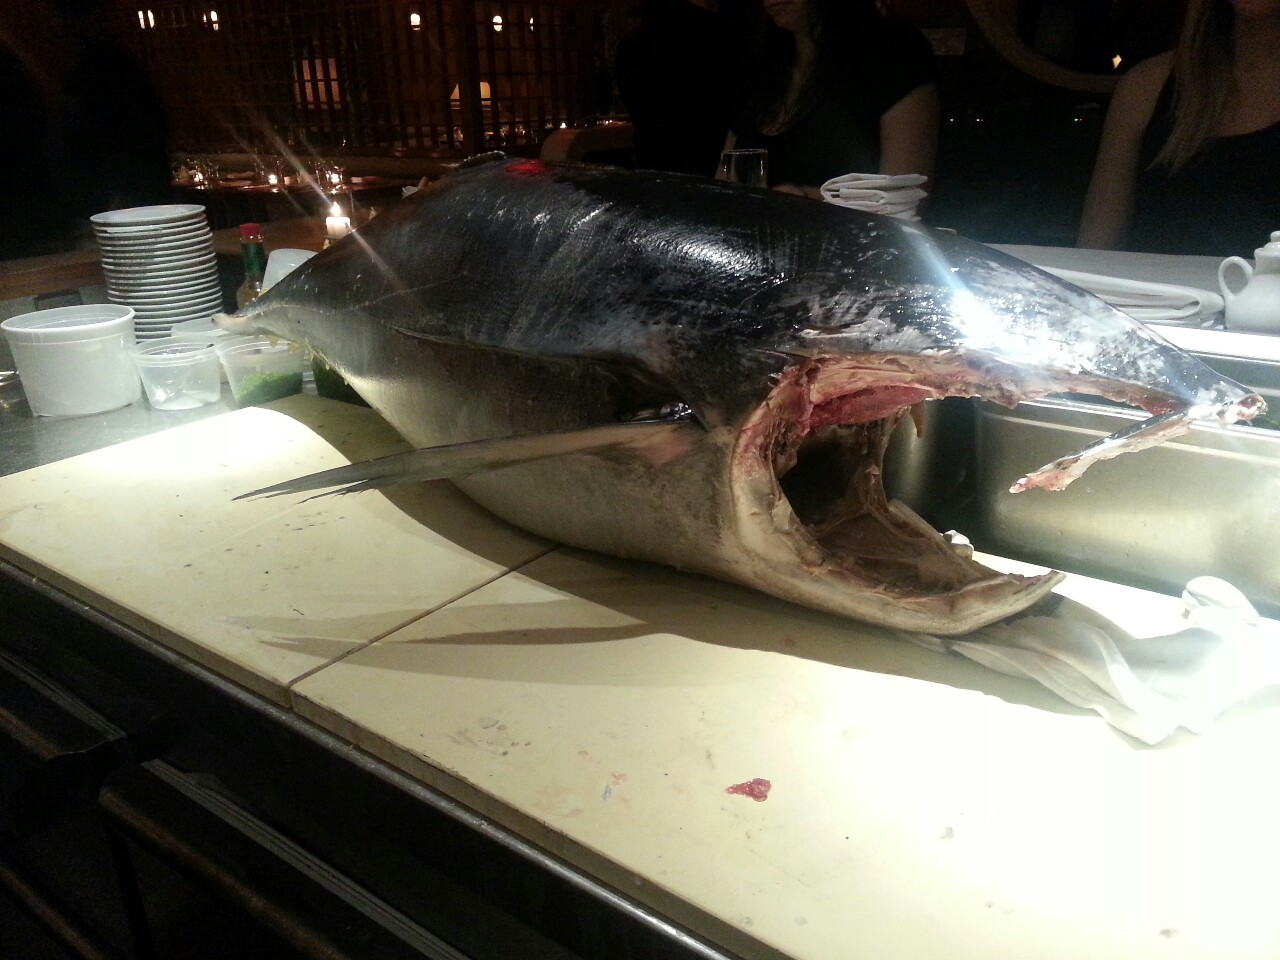 A 110 pound tuna just arrived, let the carving begin.